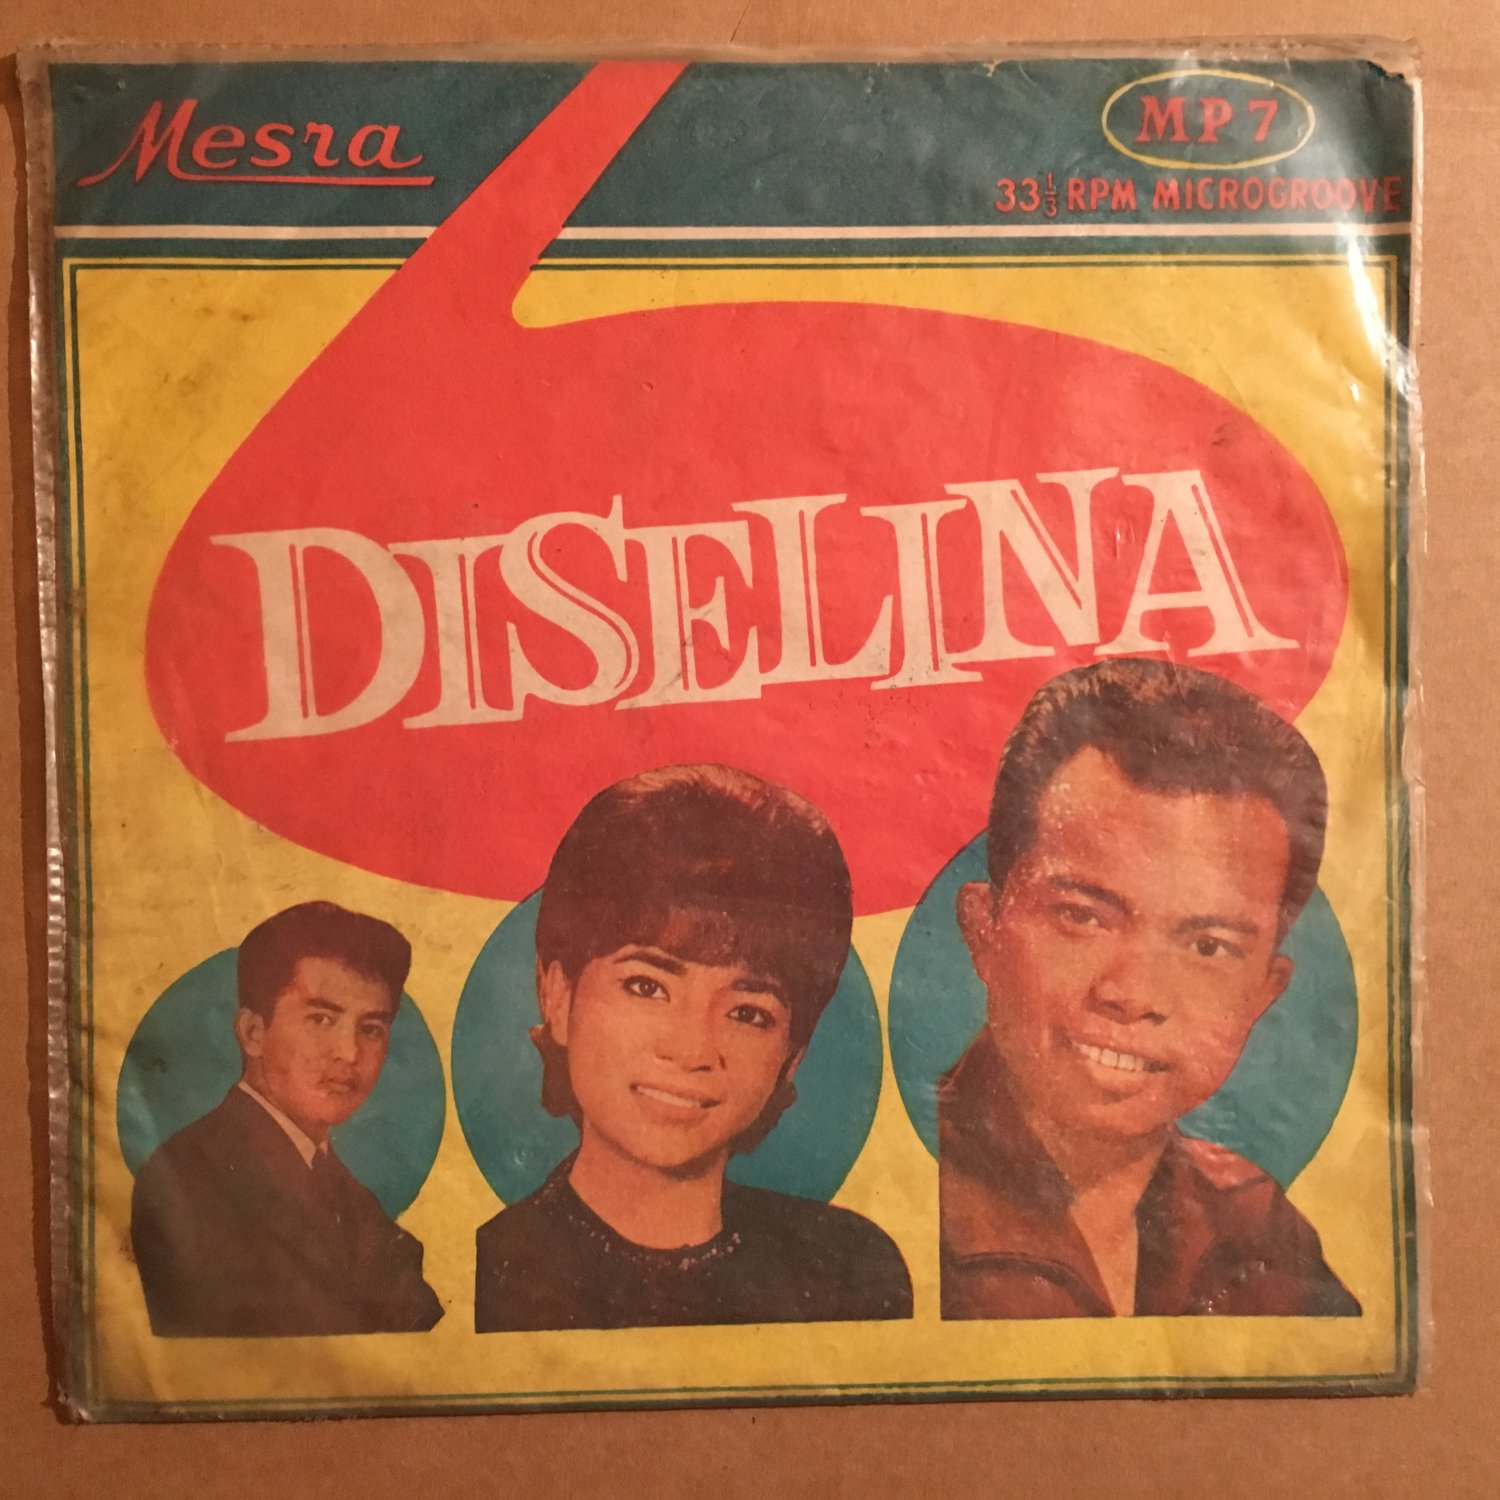 "ORKES DISELINA 10"" same INDONESIA MESRA 50's - 60's BEAT mp3 LISTEN"